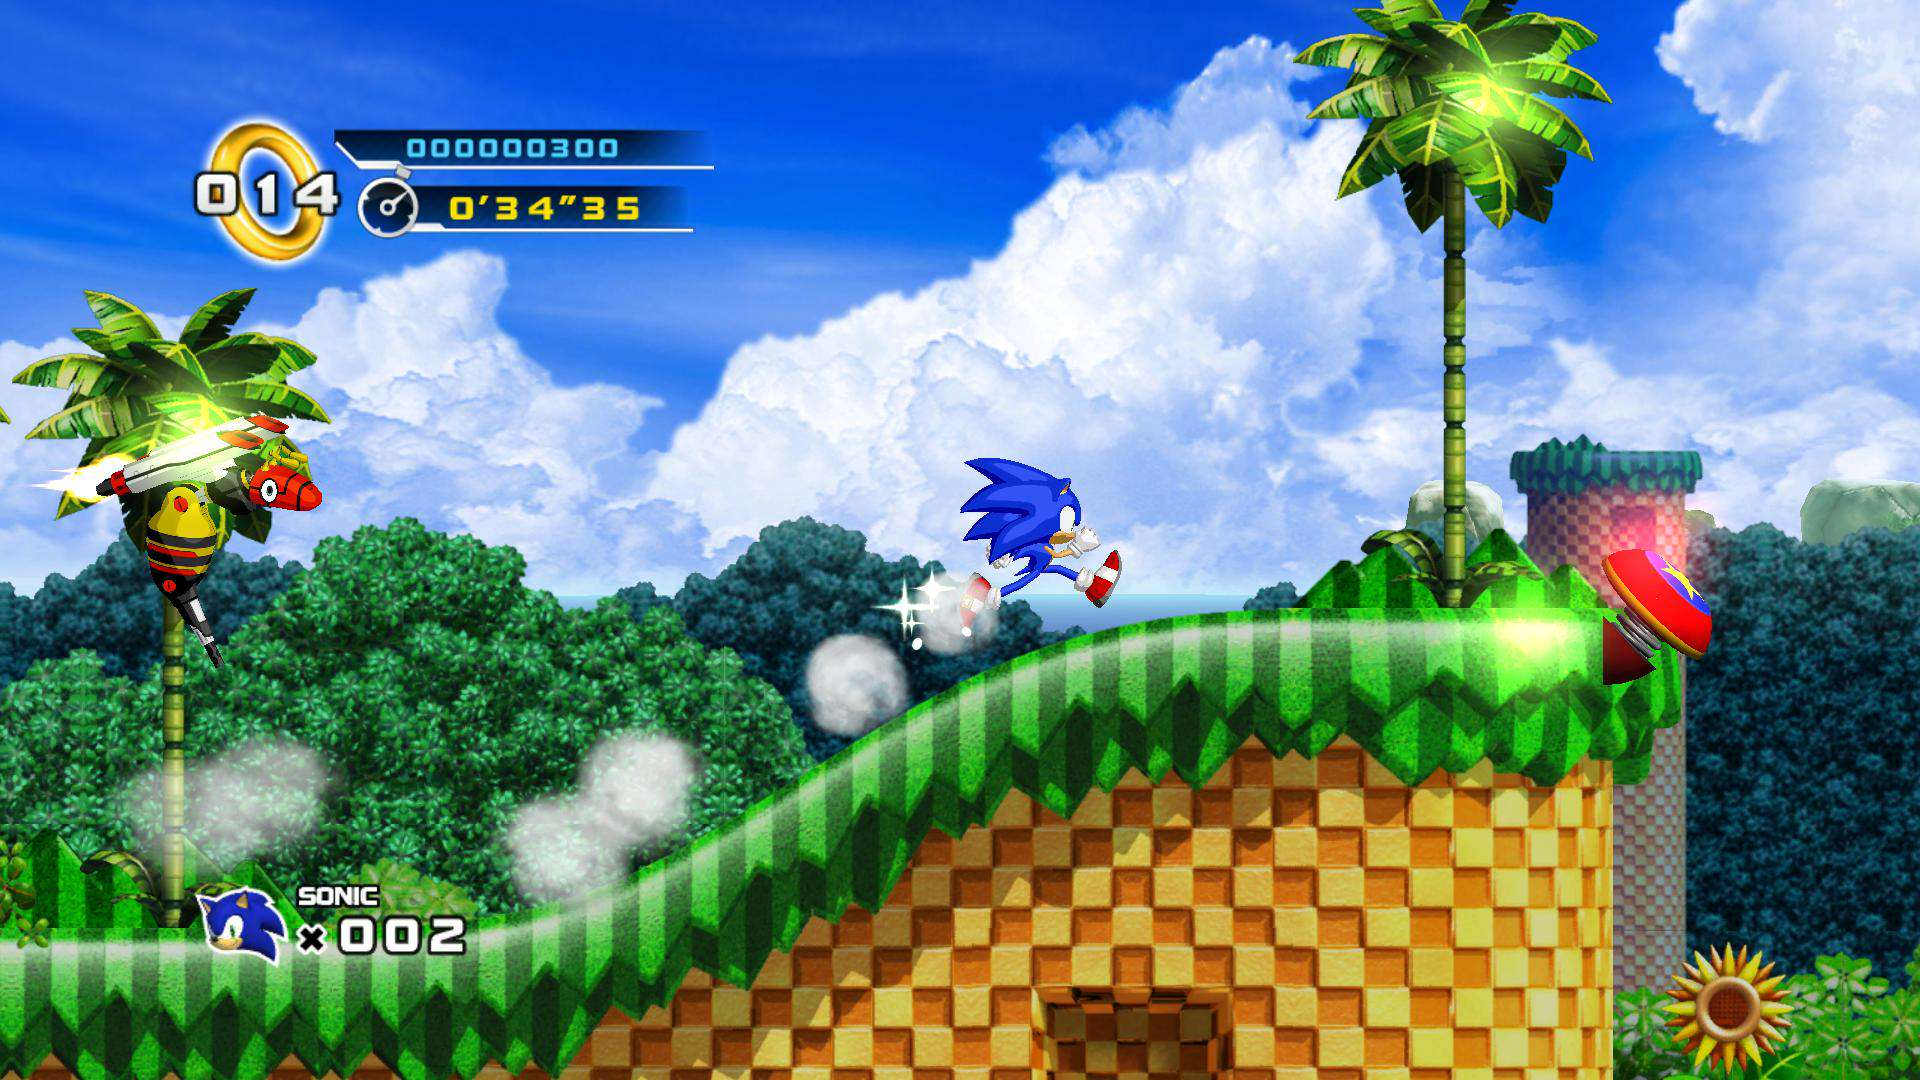 Sonic The Hedgehog Movie Confirmed For 2018, World Collectively Shrugs Sonic4r2